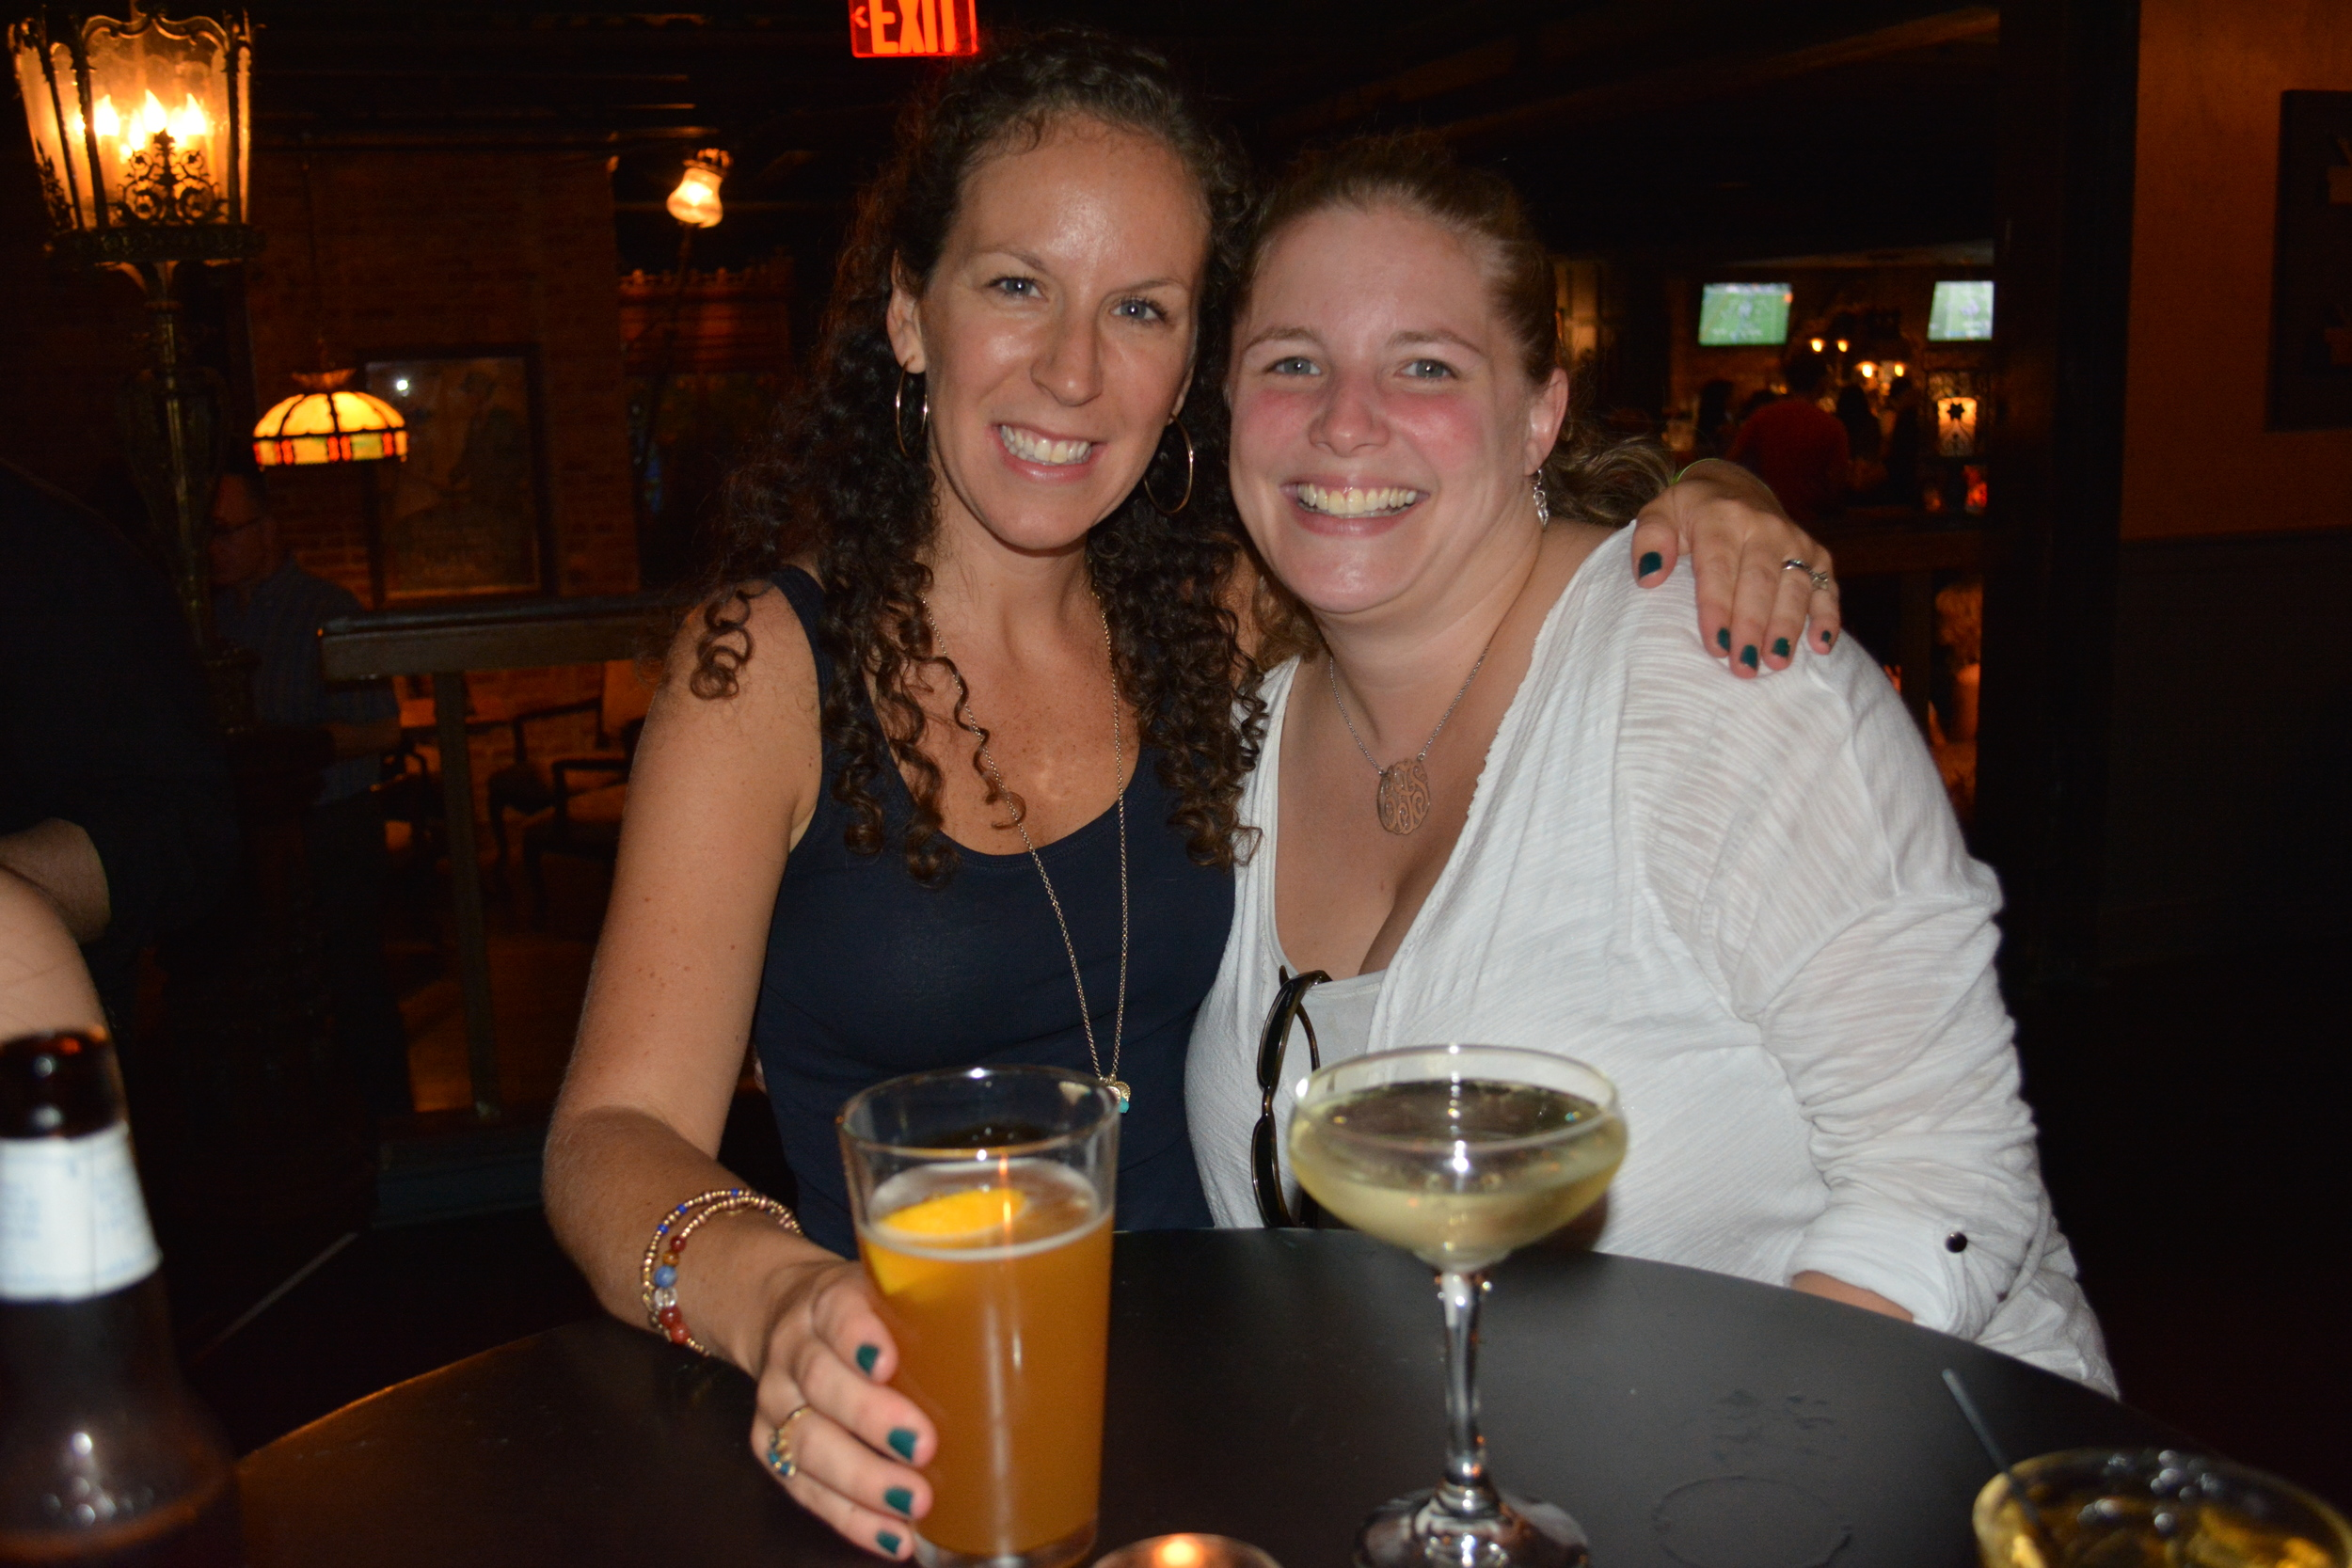 Alanna Russo, of East Northport, enjoys a drink with Claudia S. Fortunato-Napolitano, executive director of the Huntington Historical Society, in the Founder's Room of The Paramount, one of two stops during Sept. 3 walking tour and pub crawl.